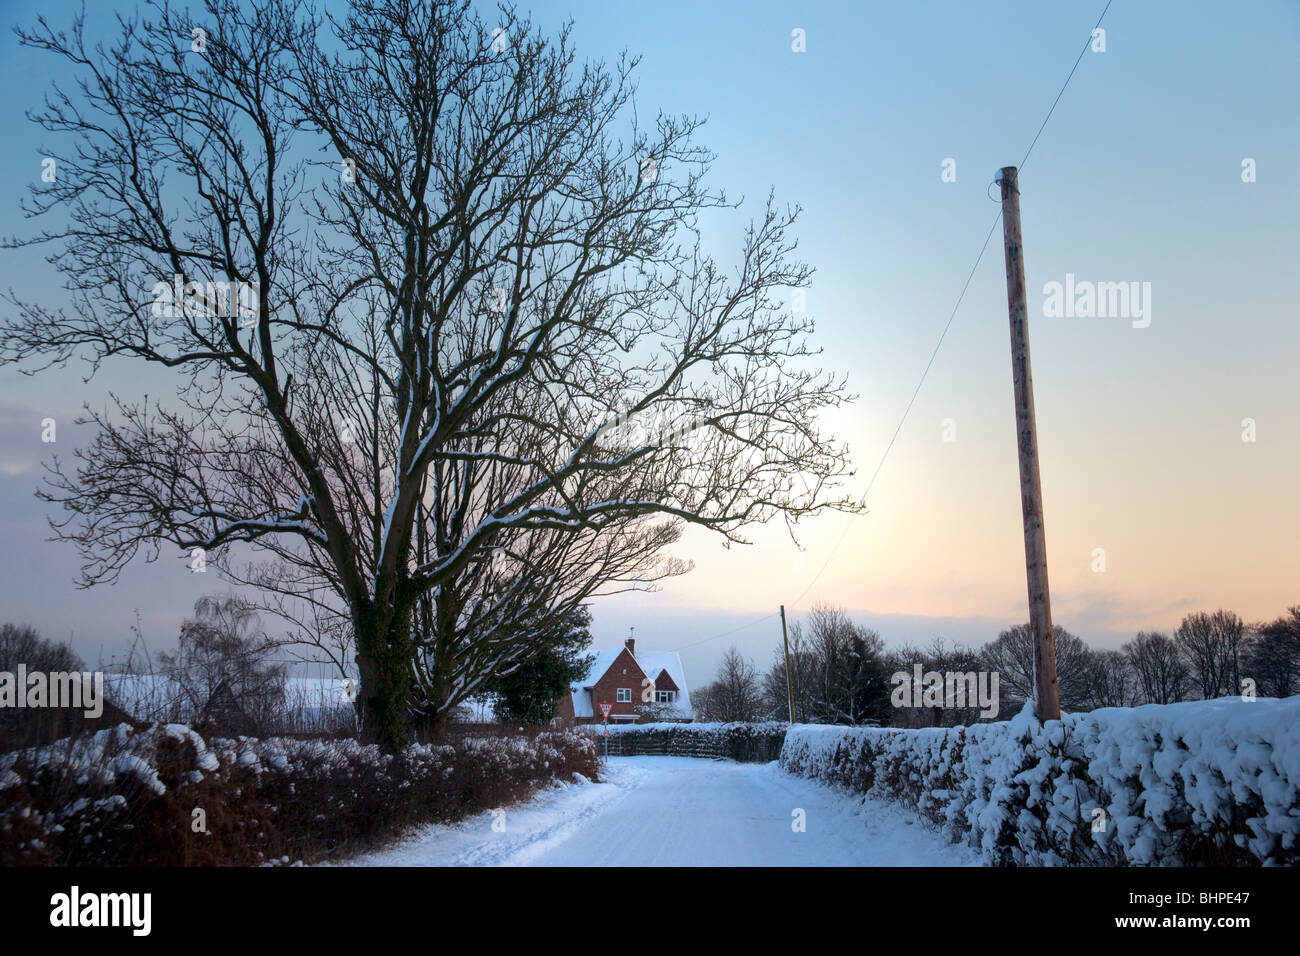 Winter evening in a country lane, Prestwood, Buckinghamshire, Chilterns, UK Stock Photo